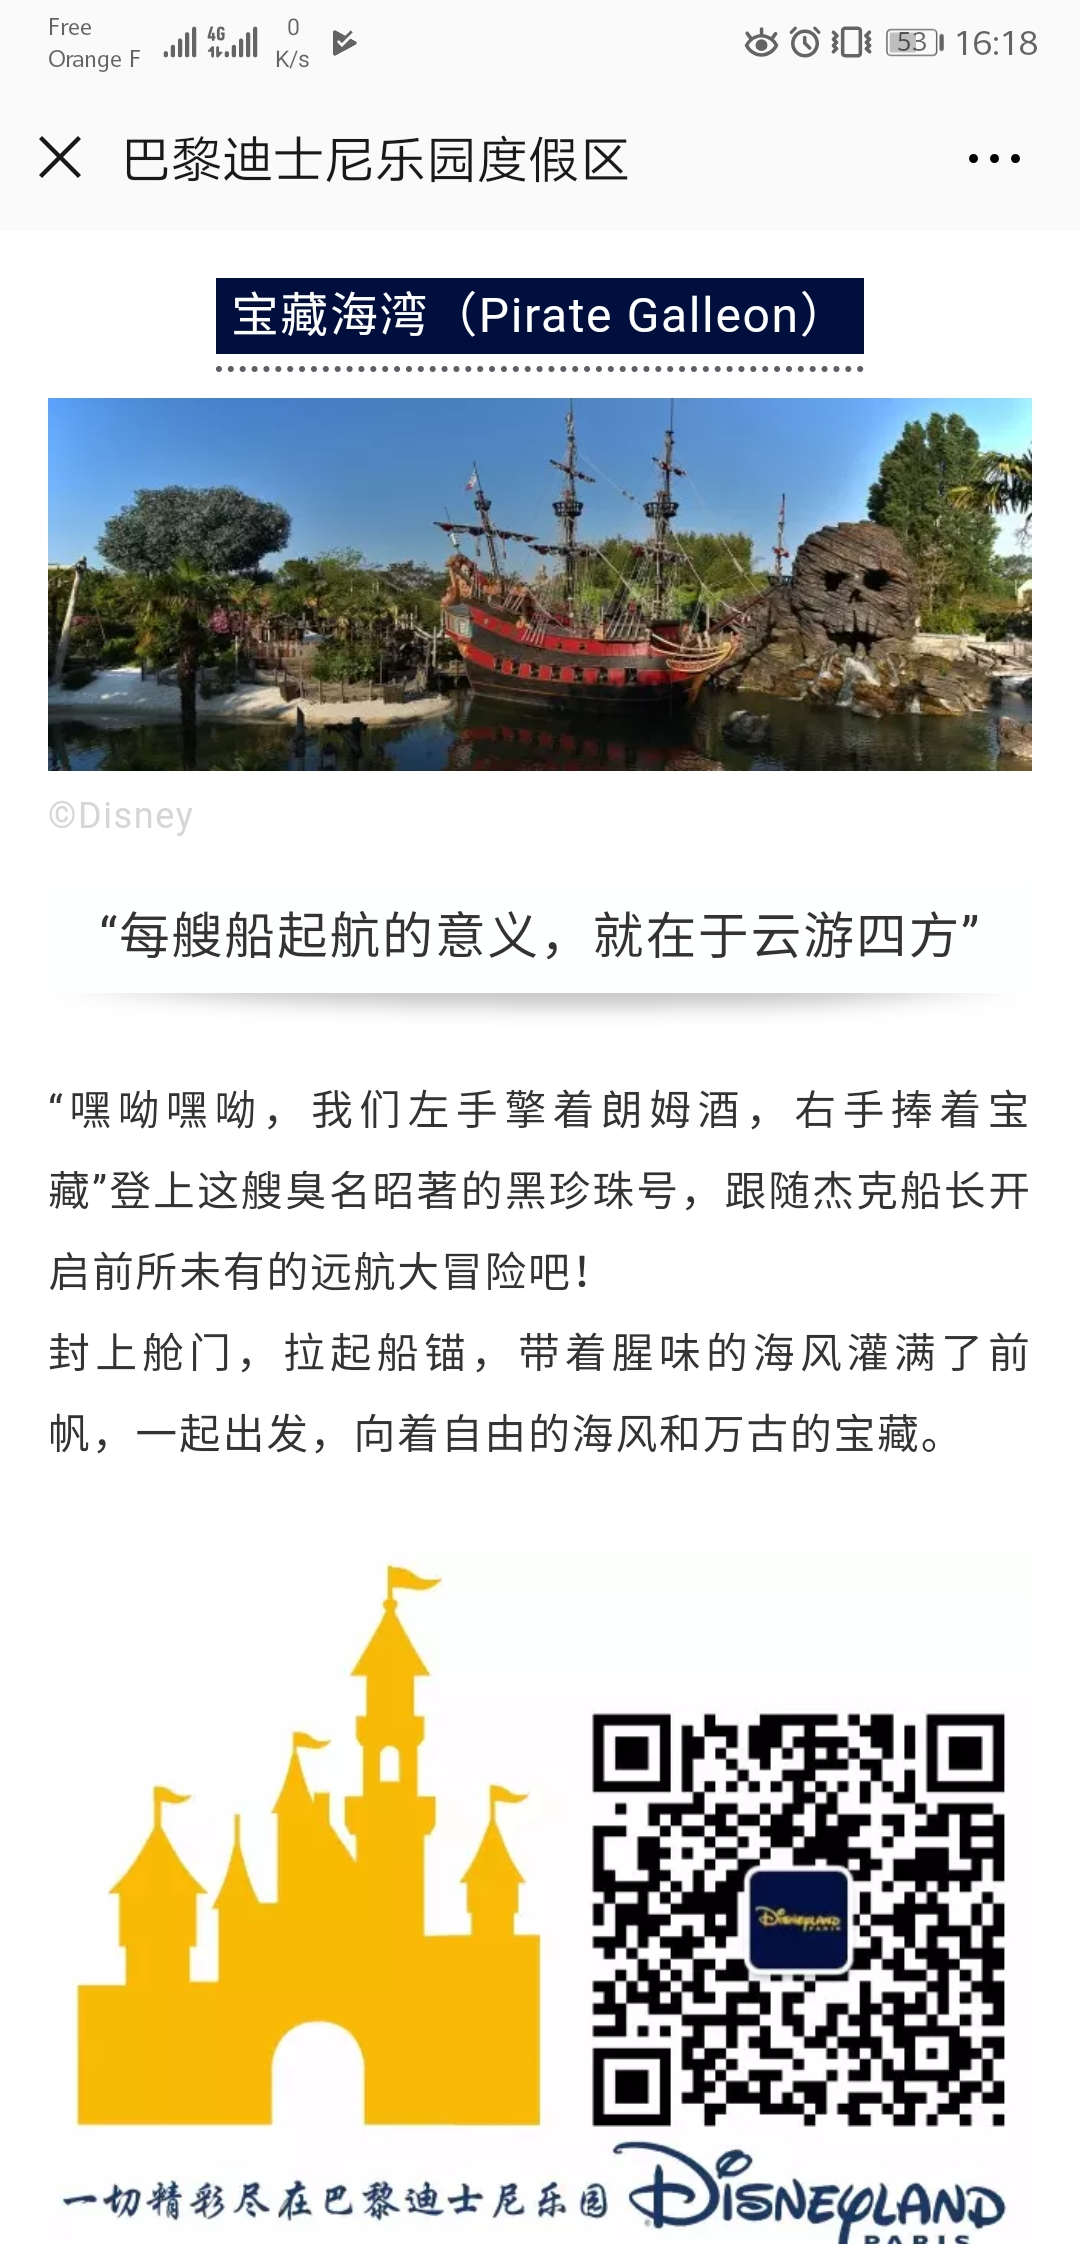 Disneyland WeChat official account